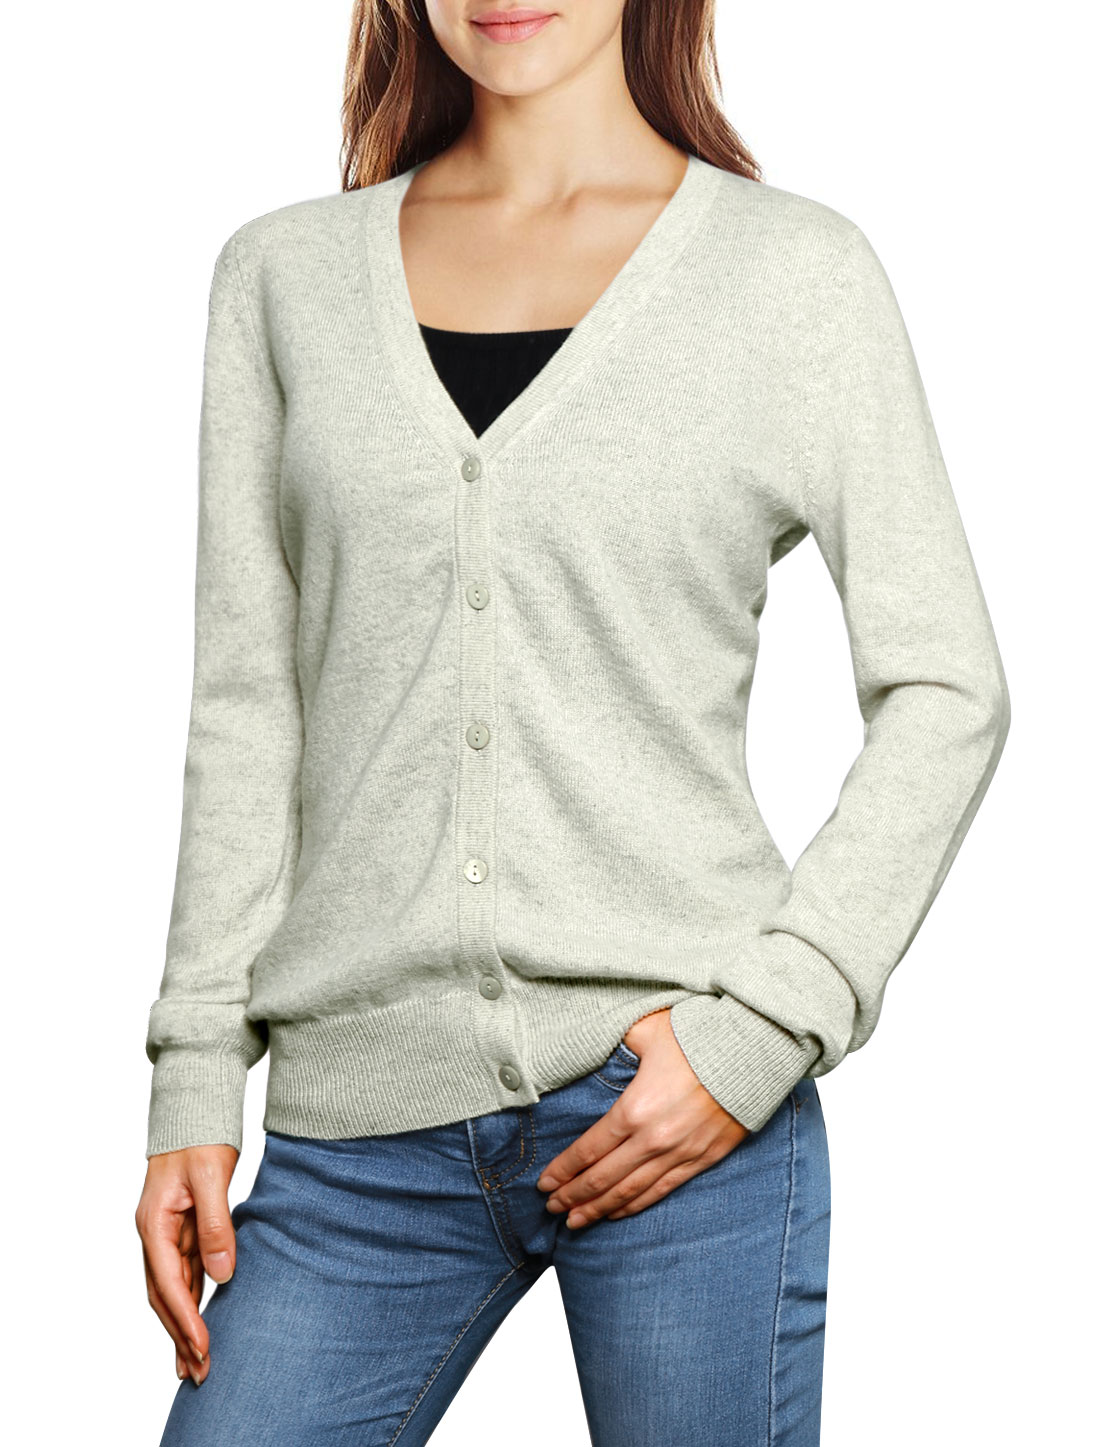 Women Single Breasted V-Neck Cashmere Cardigan Gray M